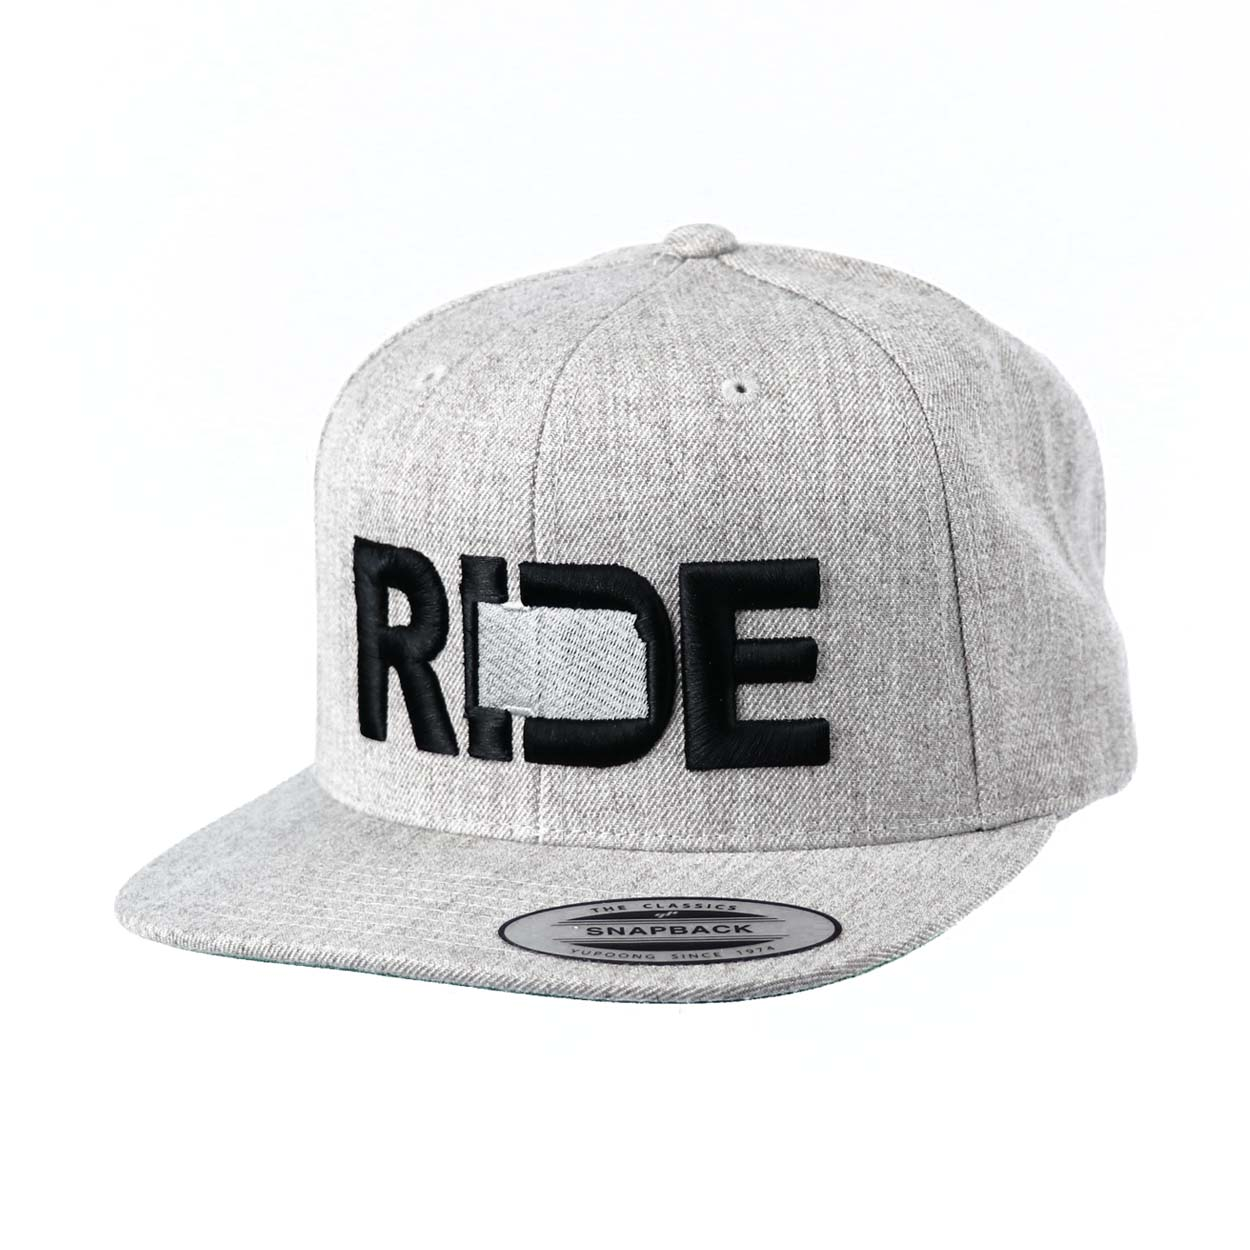 Ride Kansas Classic Embroidered  Snapback Flat Brim Hat Gray/Black